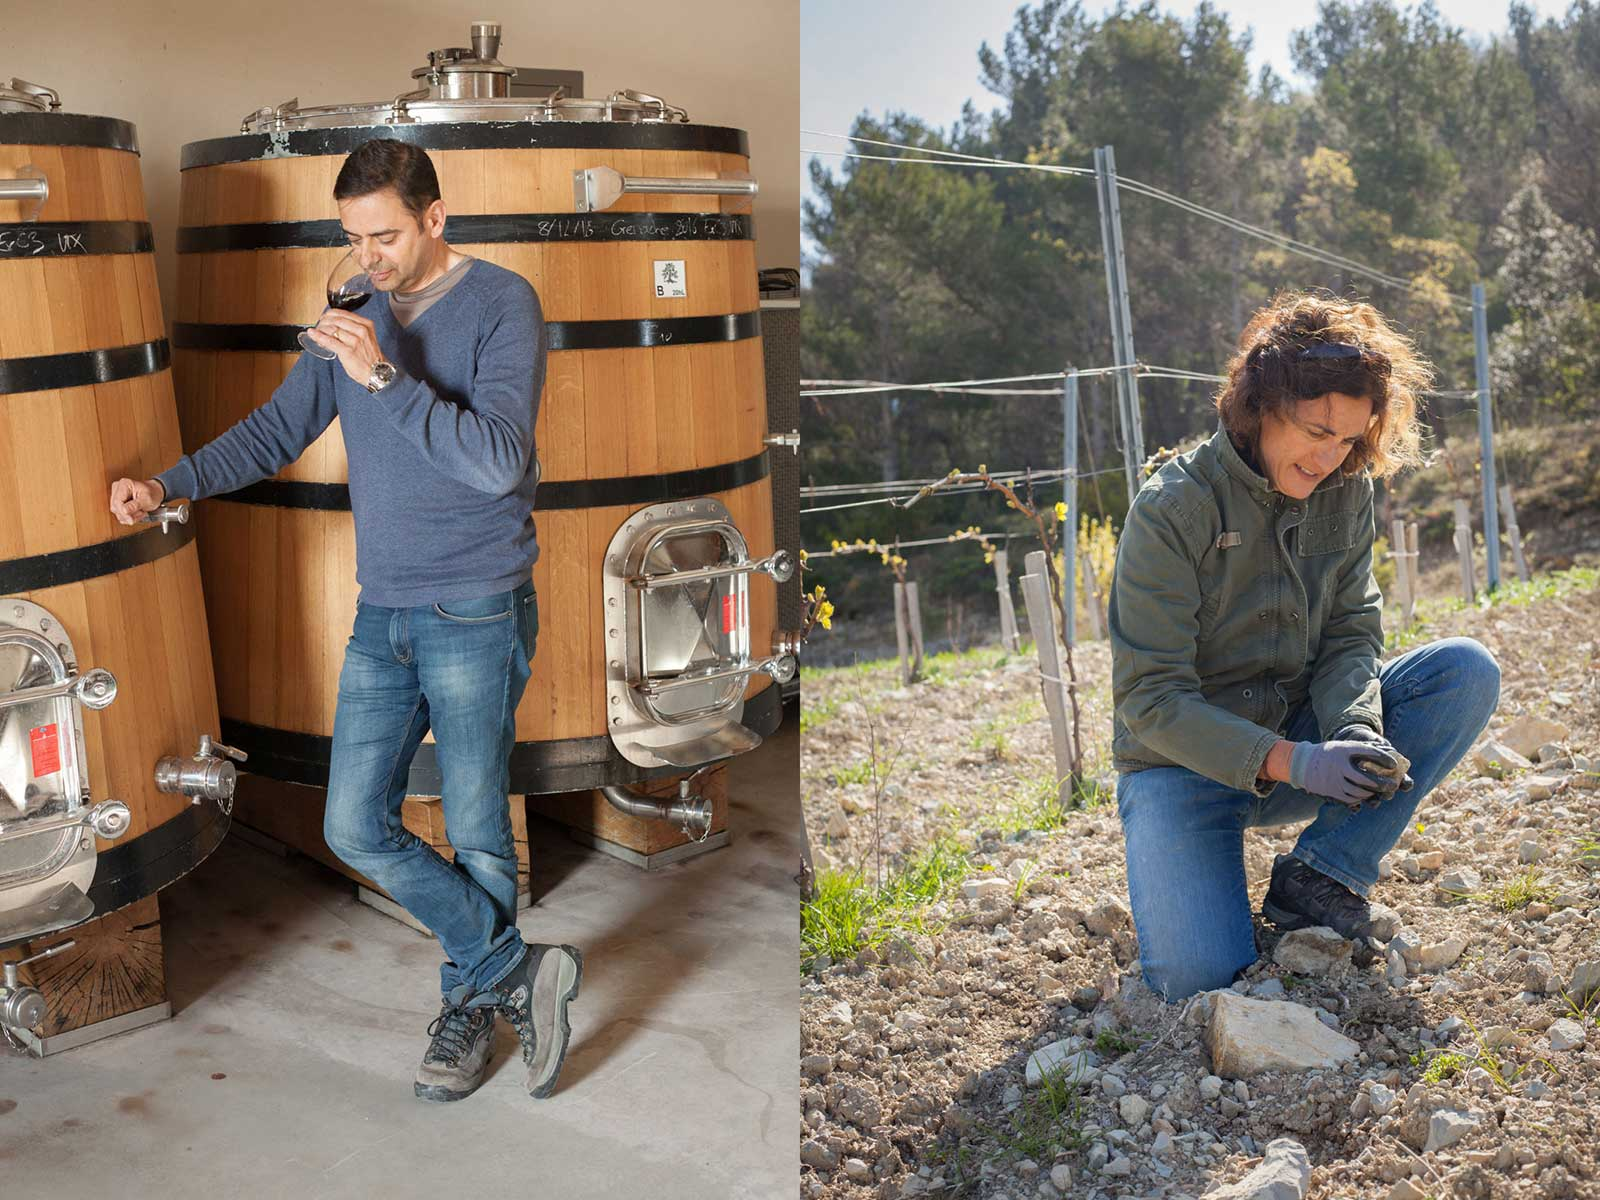 Winemaker Jean-Louis Gallucci and his wife, vineyard manager Bénédicte Gallucci. Bénédicte's brother is estate founder Xavier Rolet. ©Kevin Day / Opening a Bottle